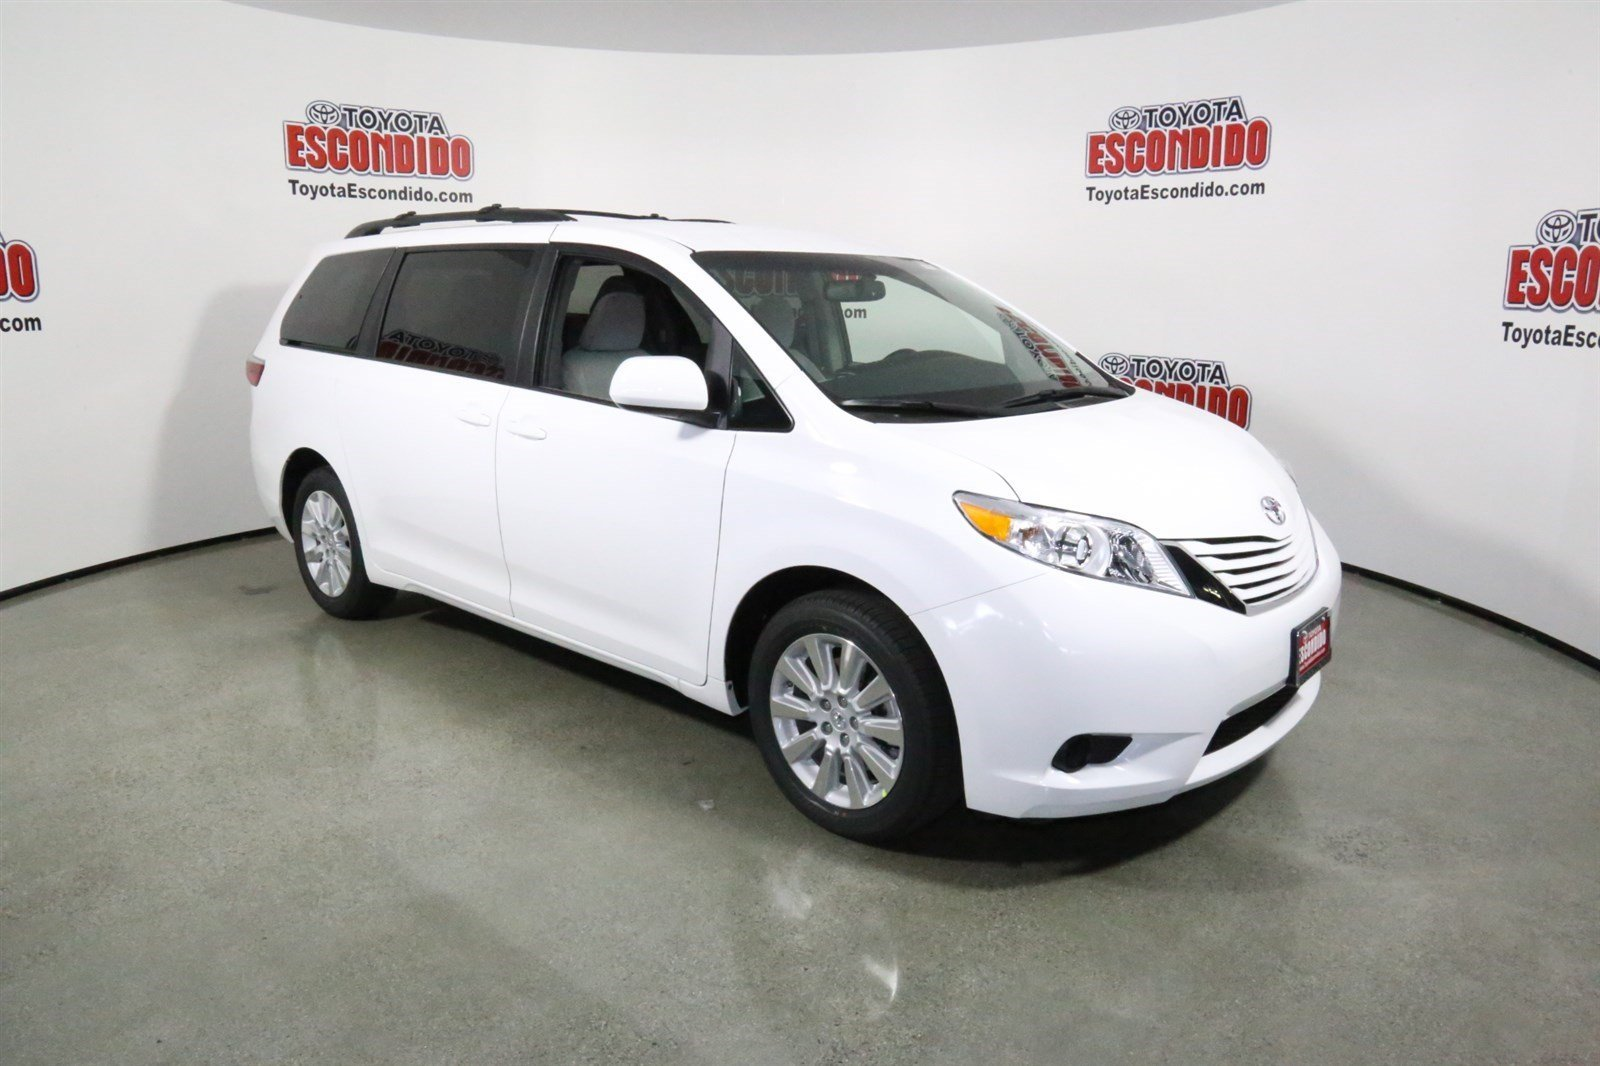 new 2017 toyota sienna le mini van passenger in escondido 1014051 toyota escondido